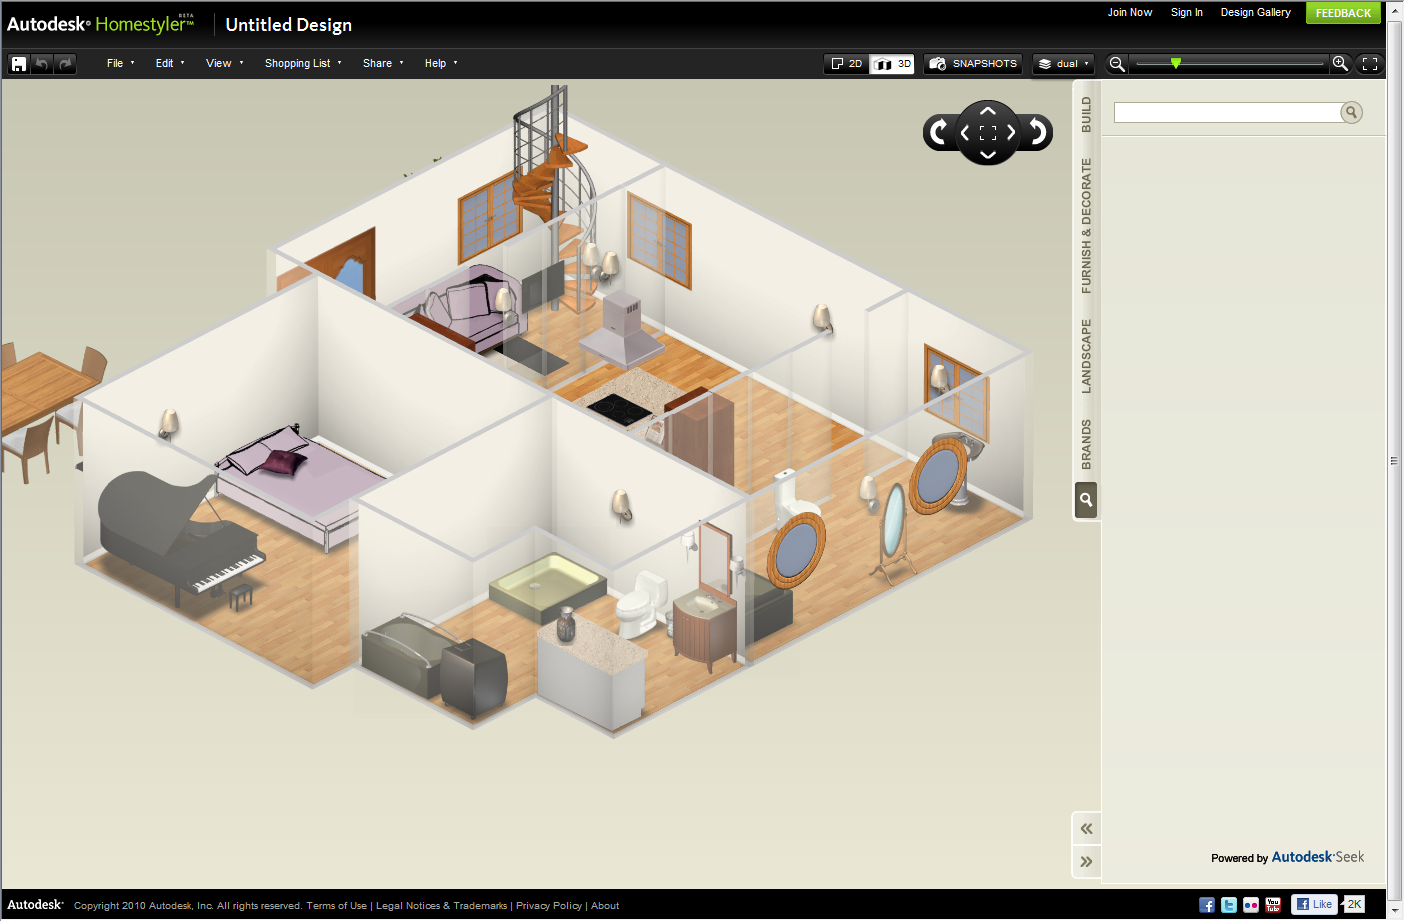 Ideate Solutions: January 2011 - Design A Kitchen Floor Plan For Free Online